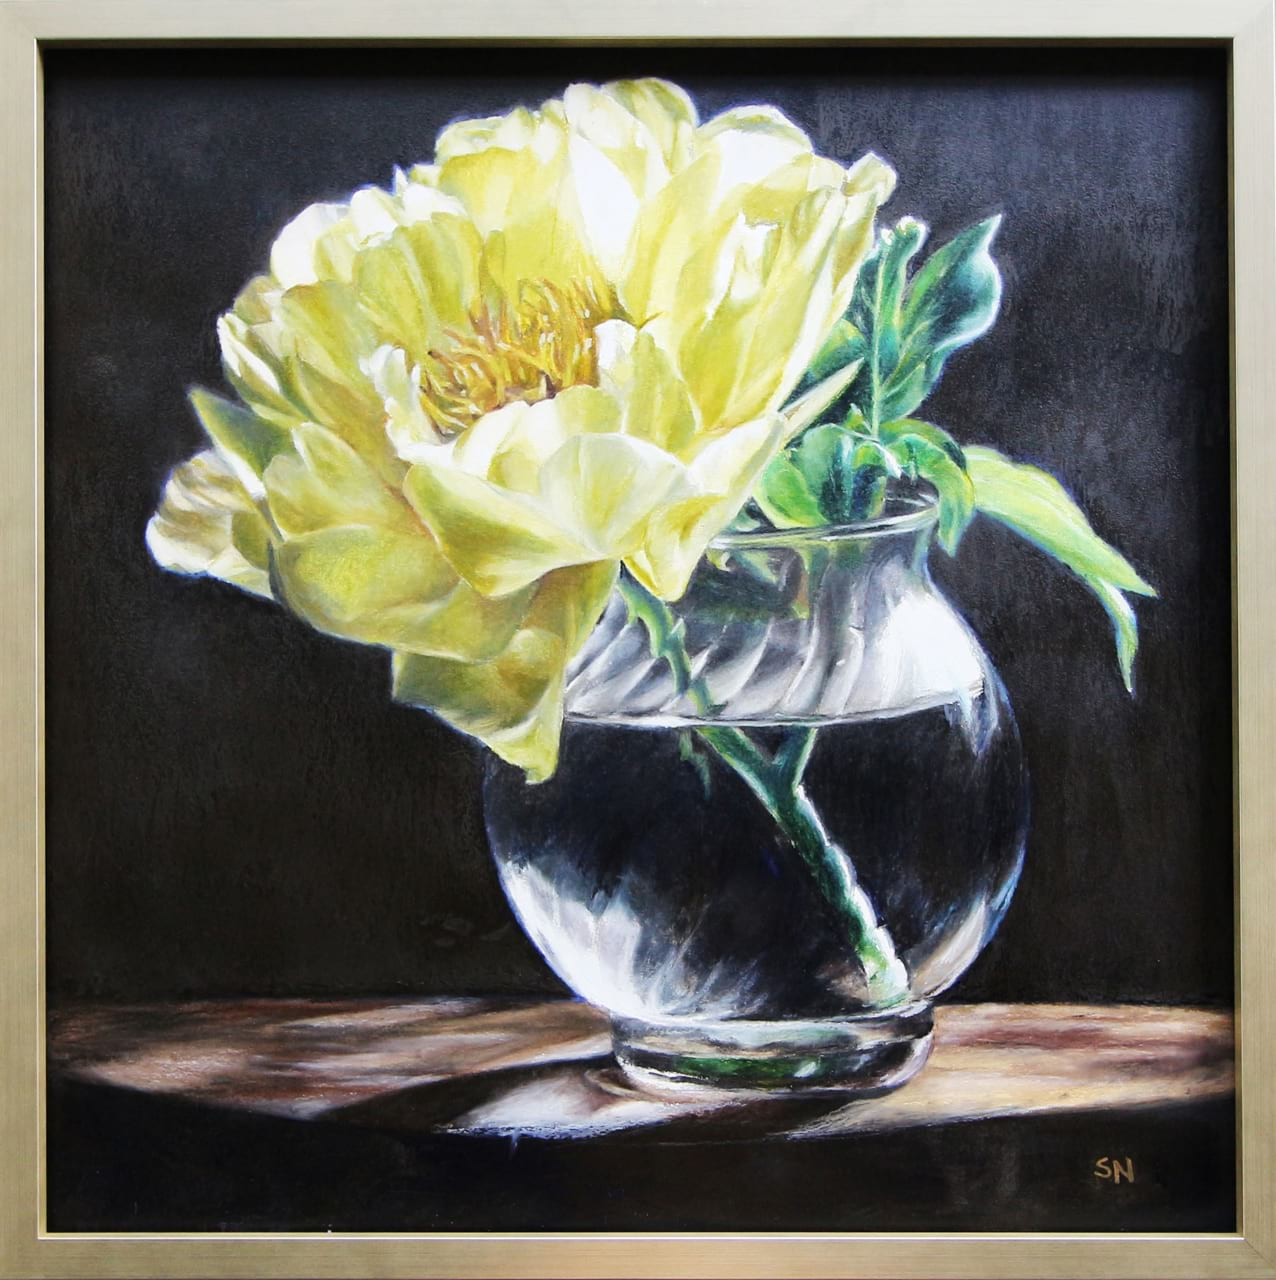 Oil pastel on watercolor paper painting of a Golden Peony illuminated by light by Stephanie Neely